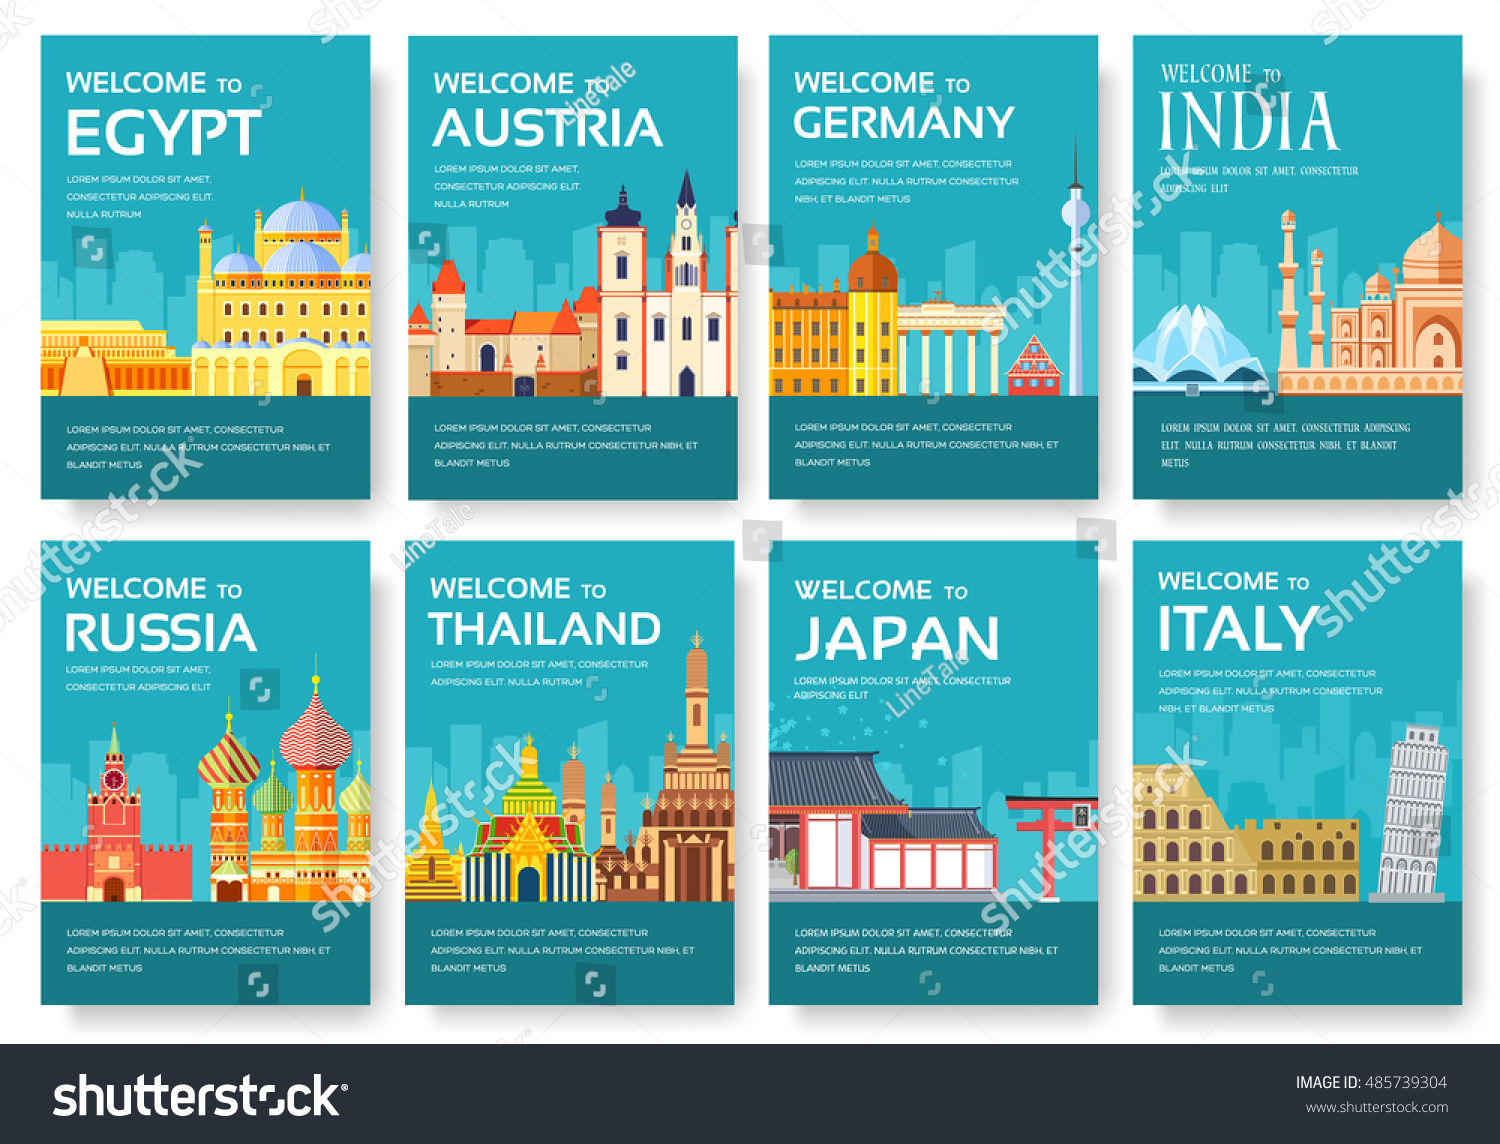 country egypt austria germany india russia stock vector